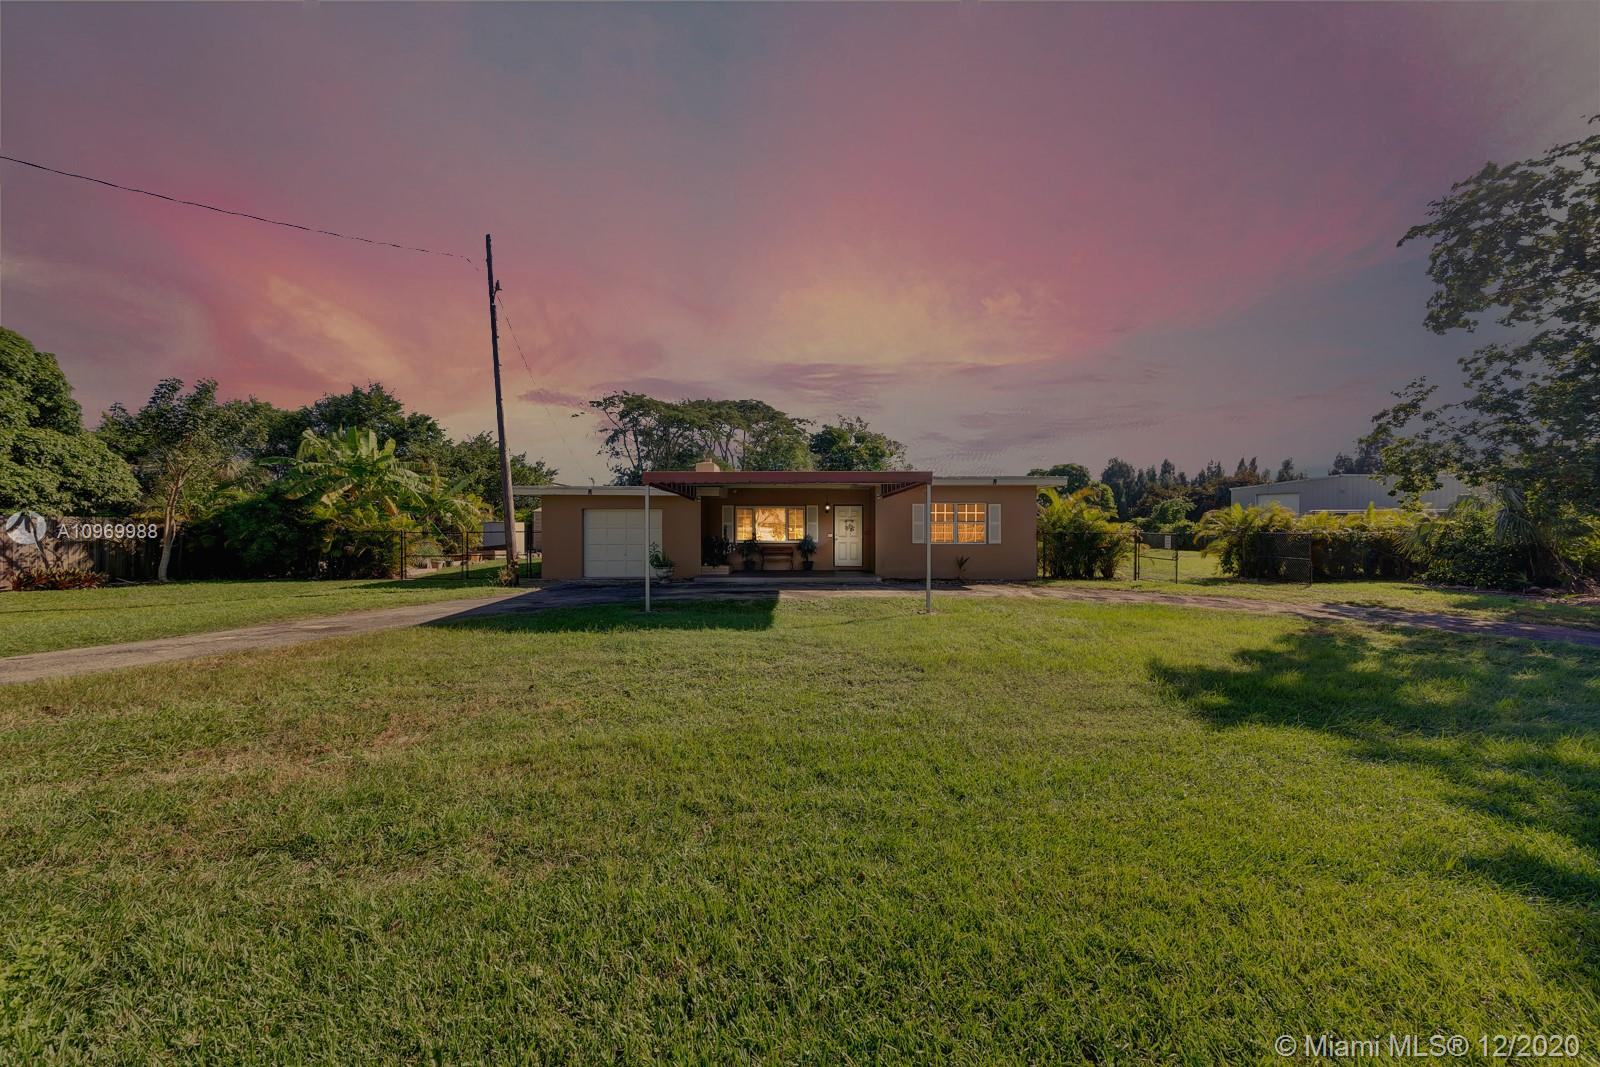 31301 SW 193rd Ave Property Photo - Homestead, FL real estate listing